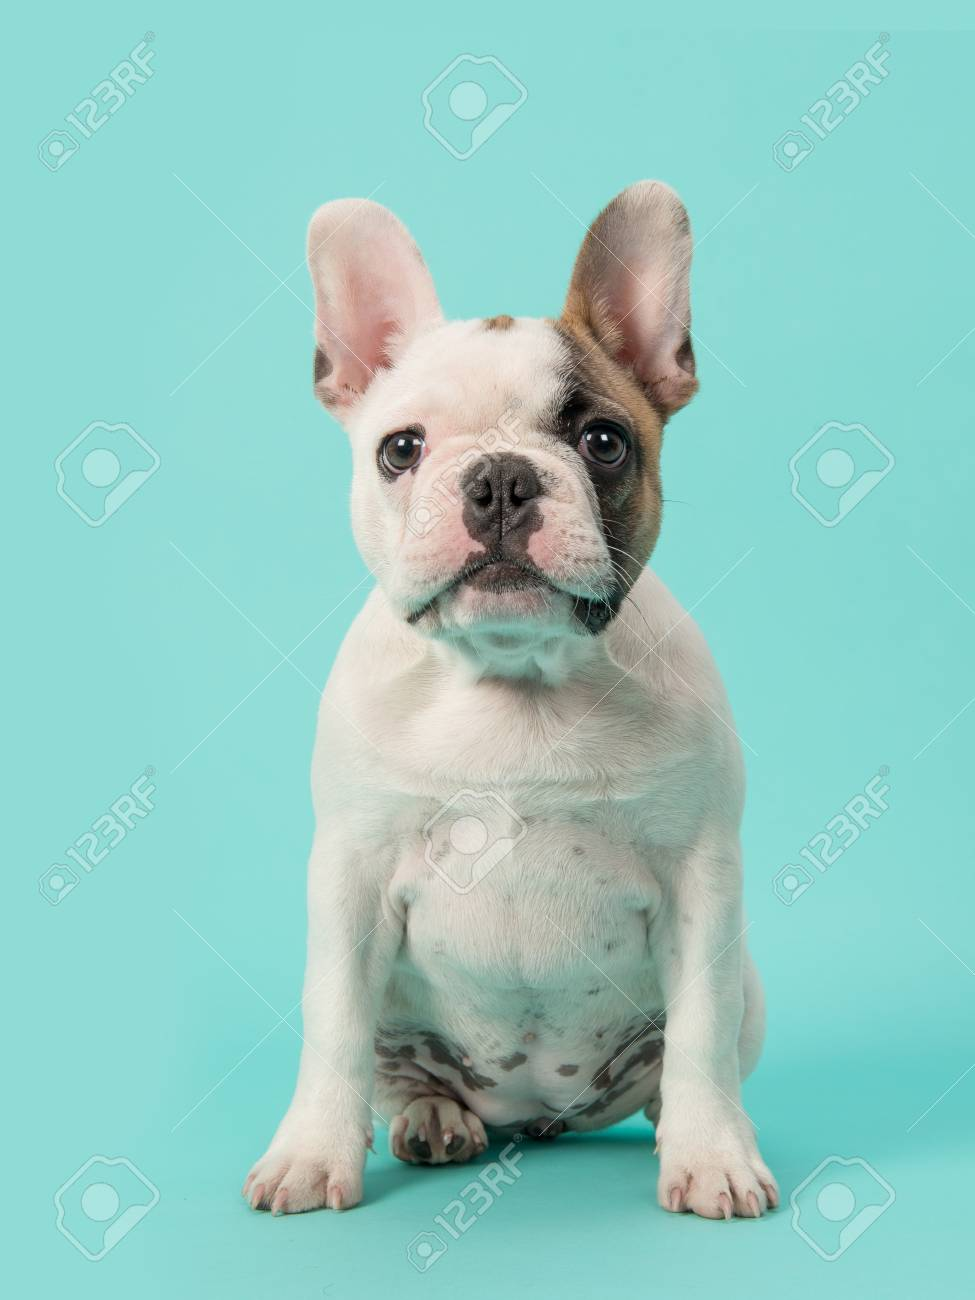 Cute Sitting White And Brown French Bulldog Puppy Facing The